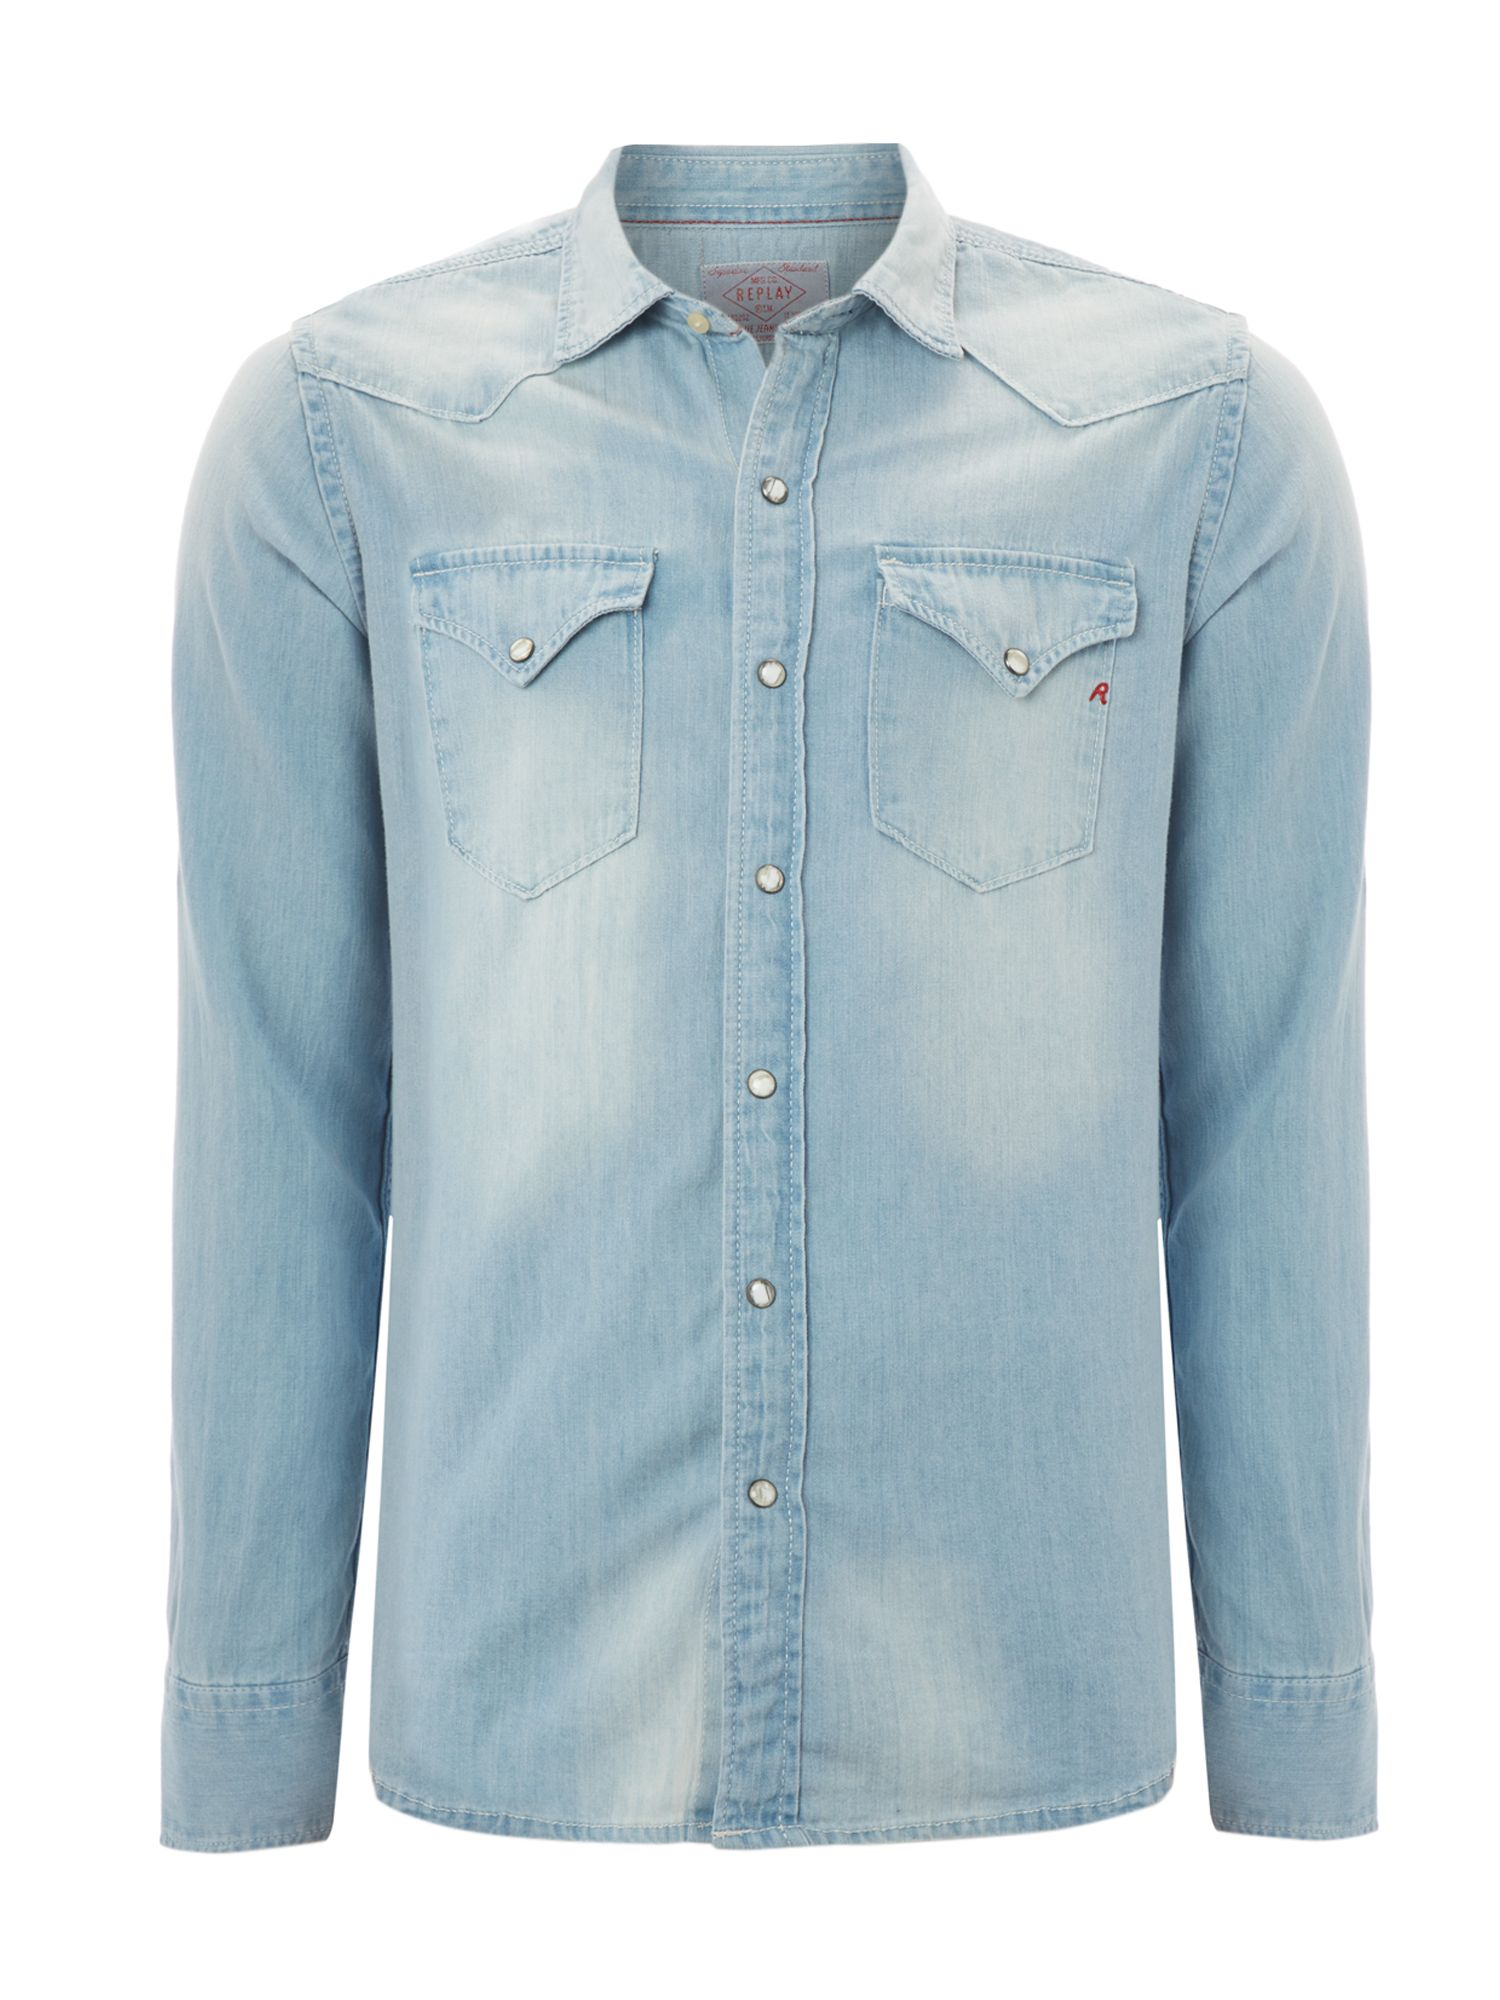 Long sleeved two pocket classic denim shirt